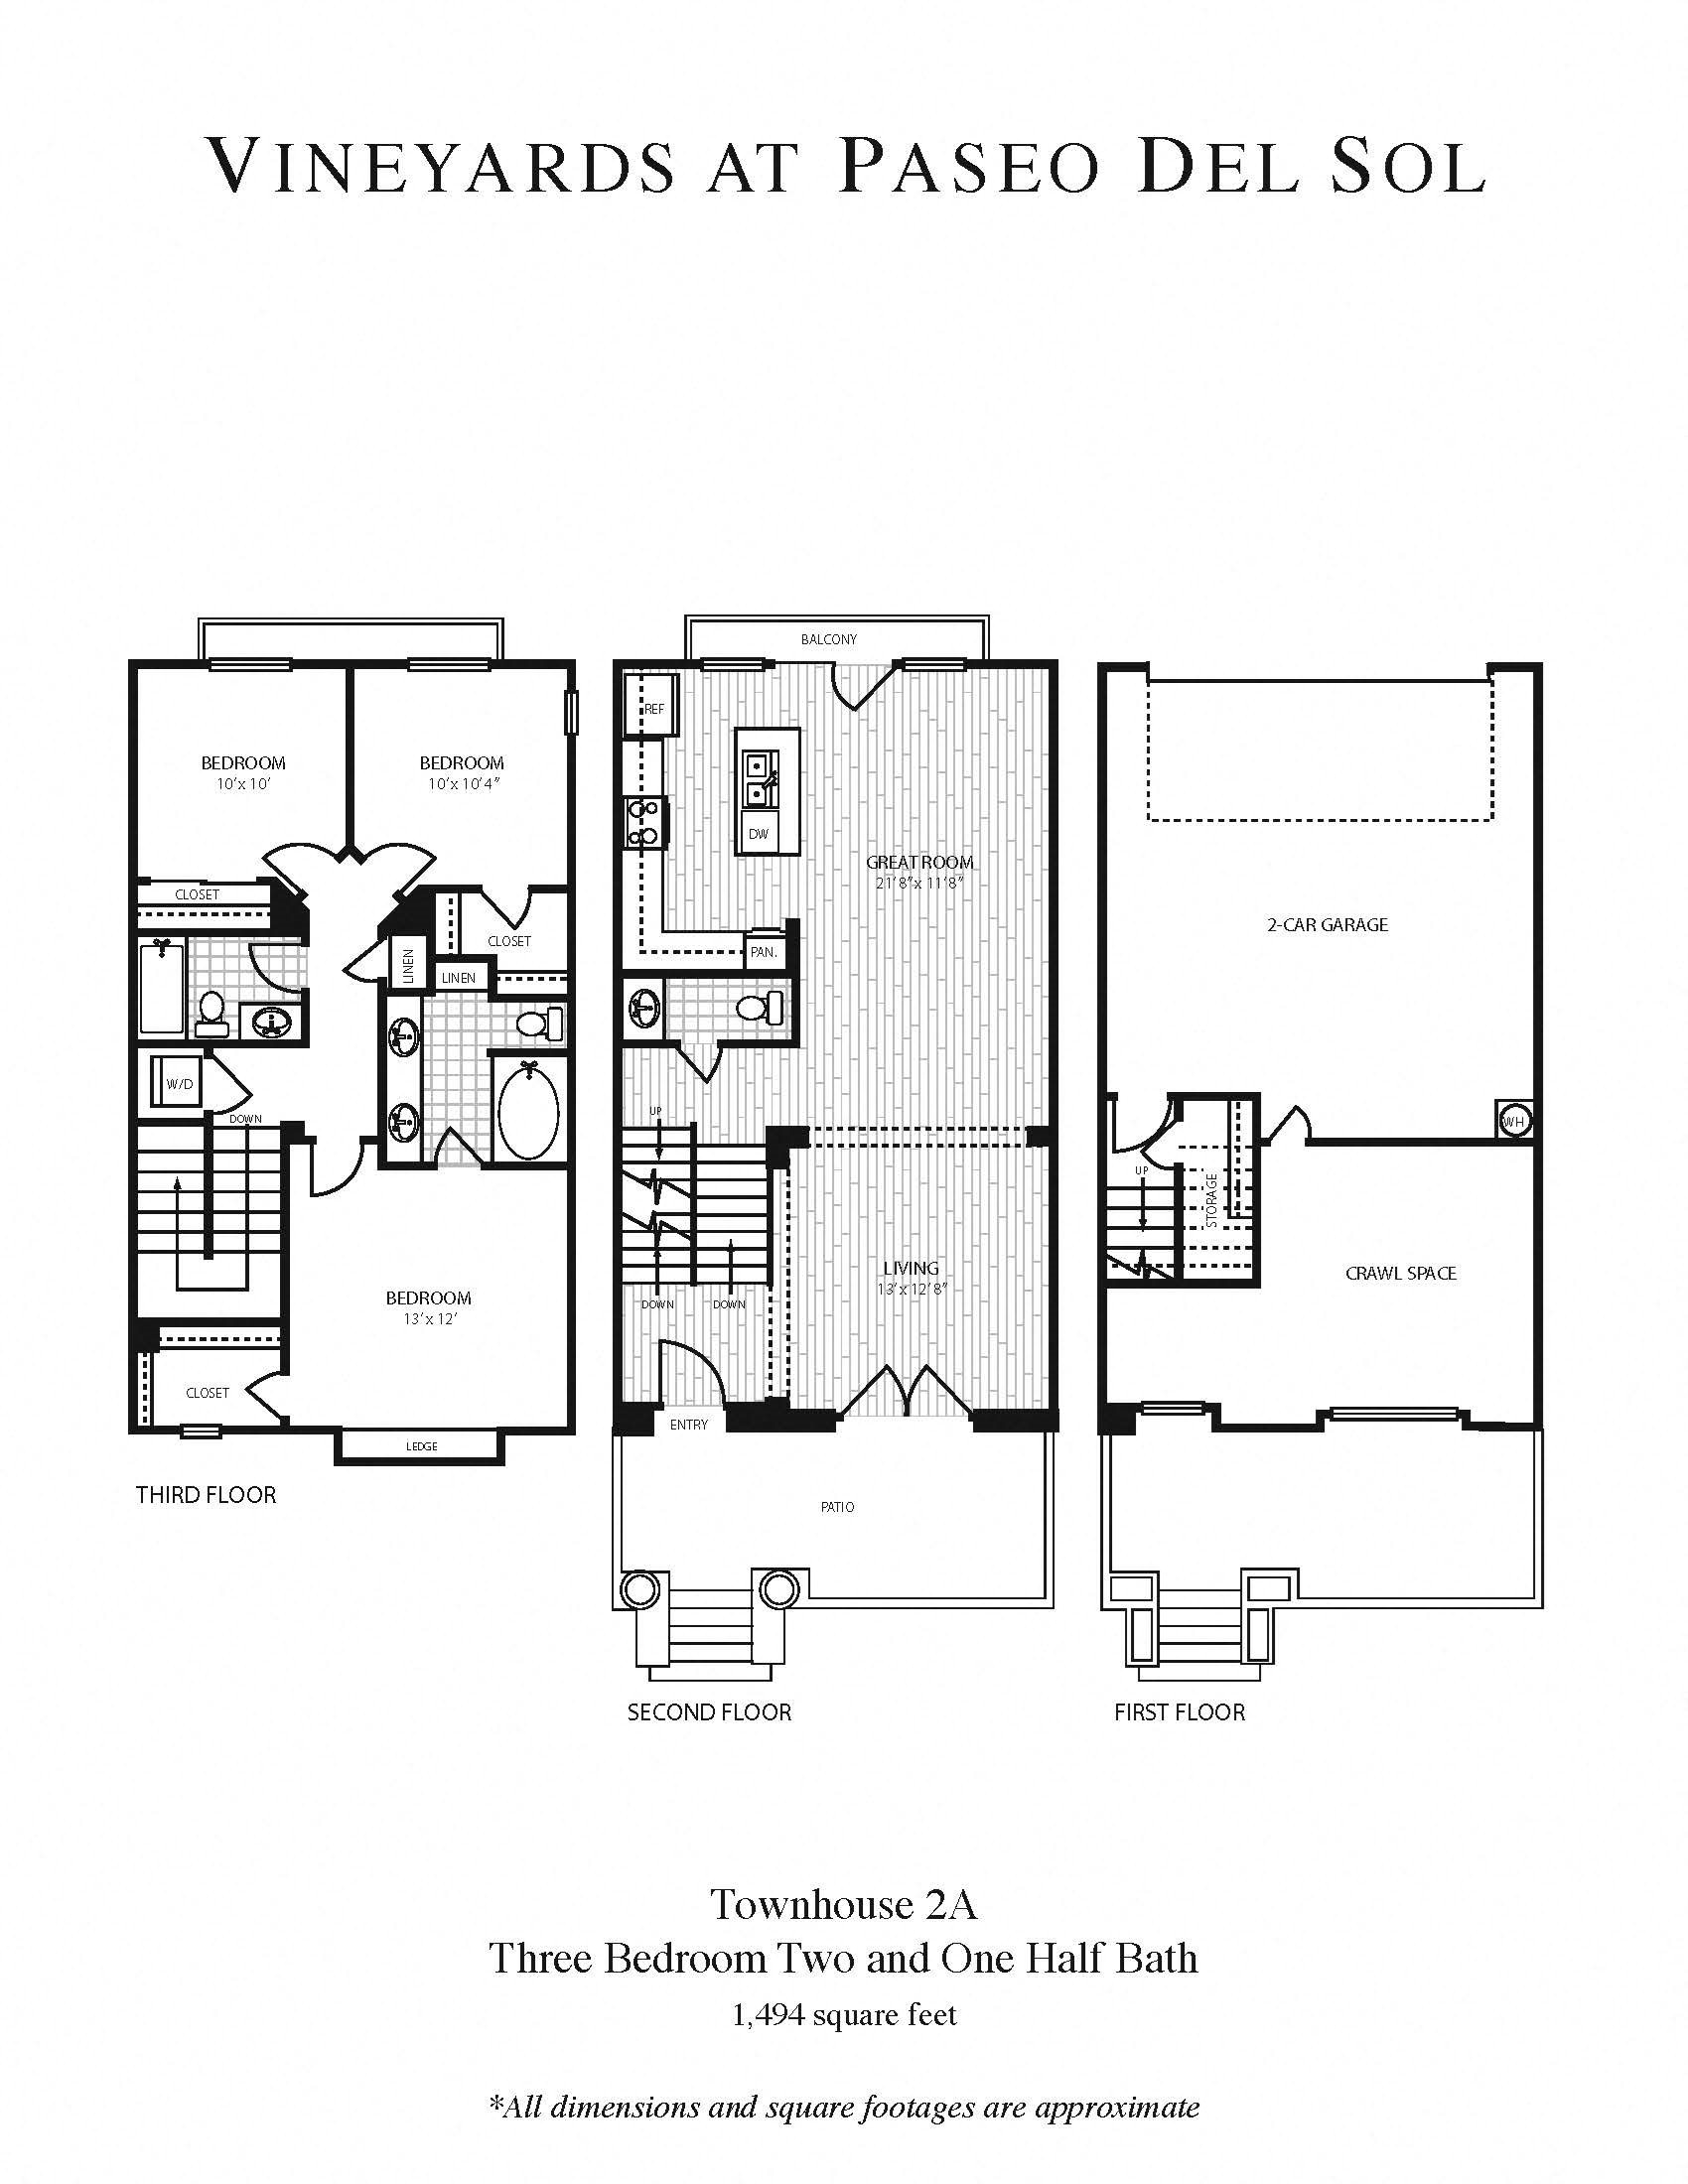 3b/2b - Townhouse Floor Plan 8